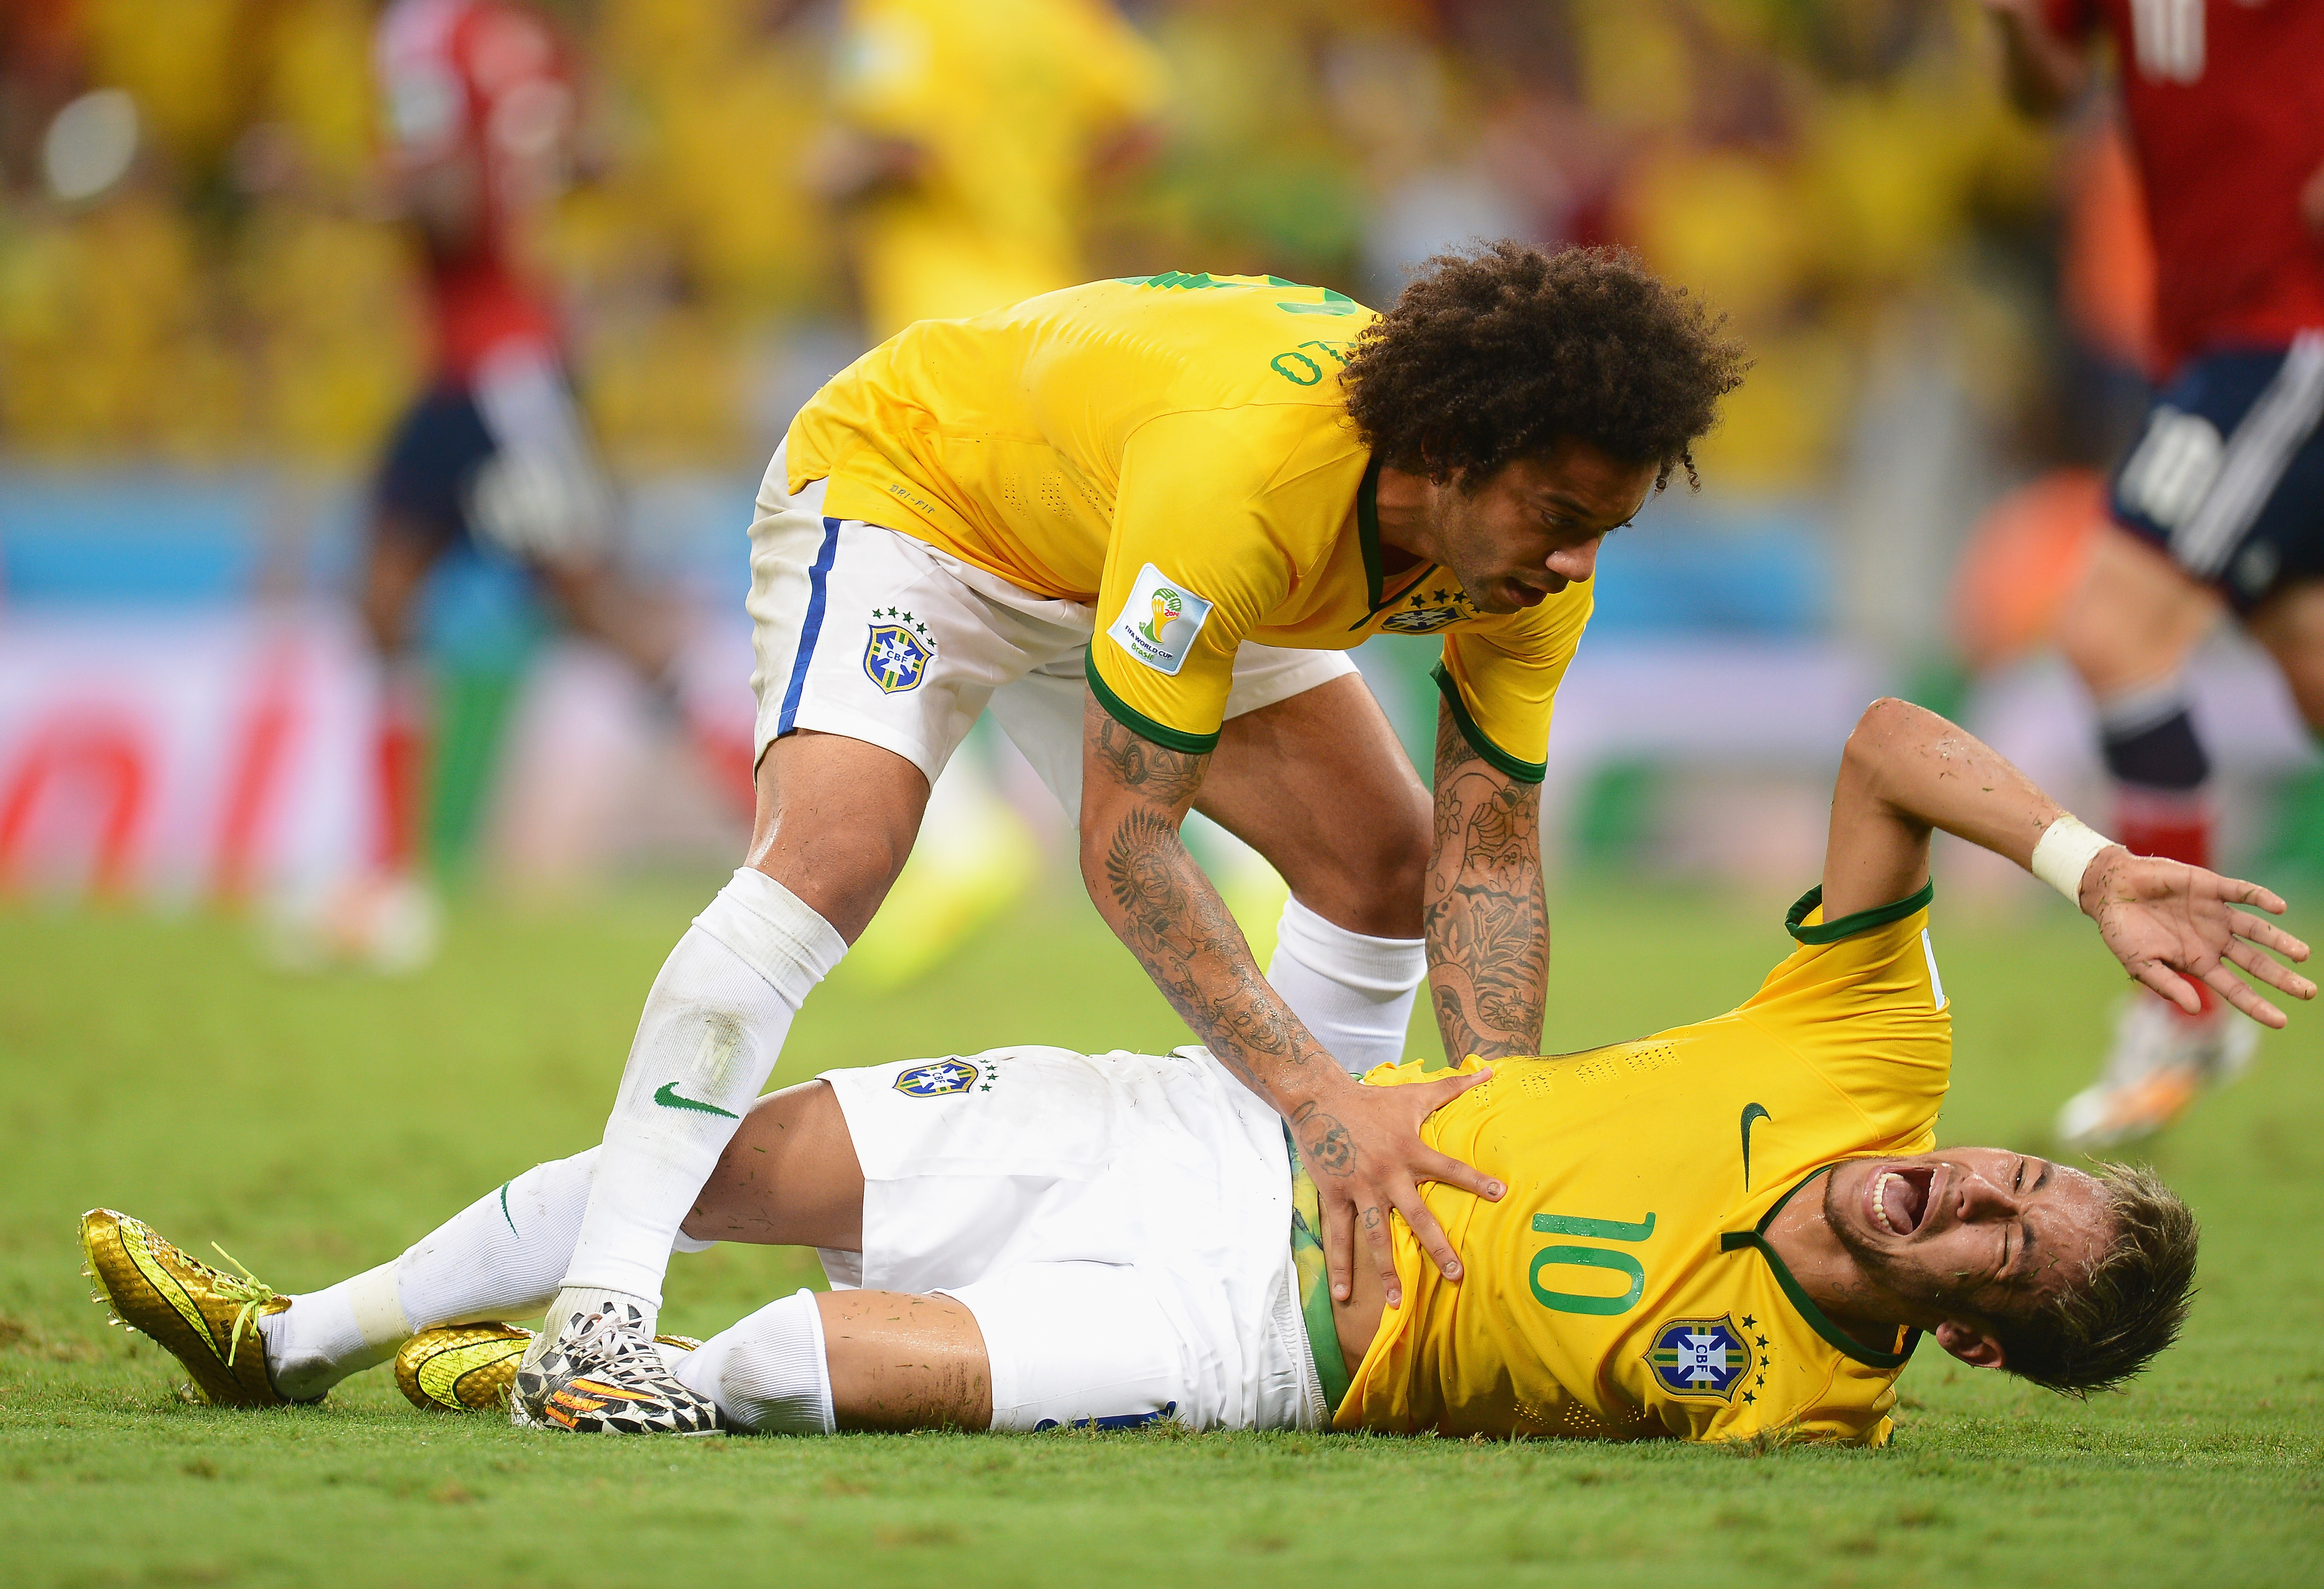 Neymar lies injured while Marcelo shows concern looking over him during the 2014 FIFA World Cup Brazil Quarter Final match between Brazil and Colombia at Estadio Castelao in Fortaleza, Brazil on July 4, 2014.